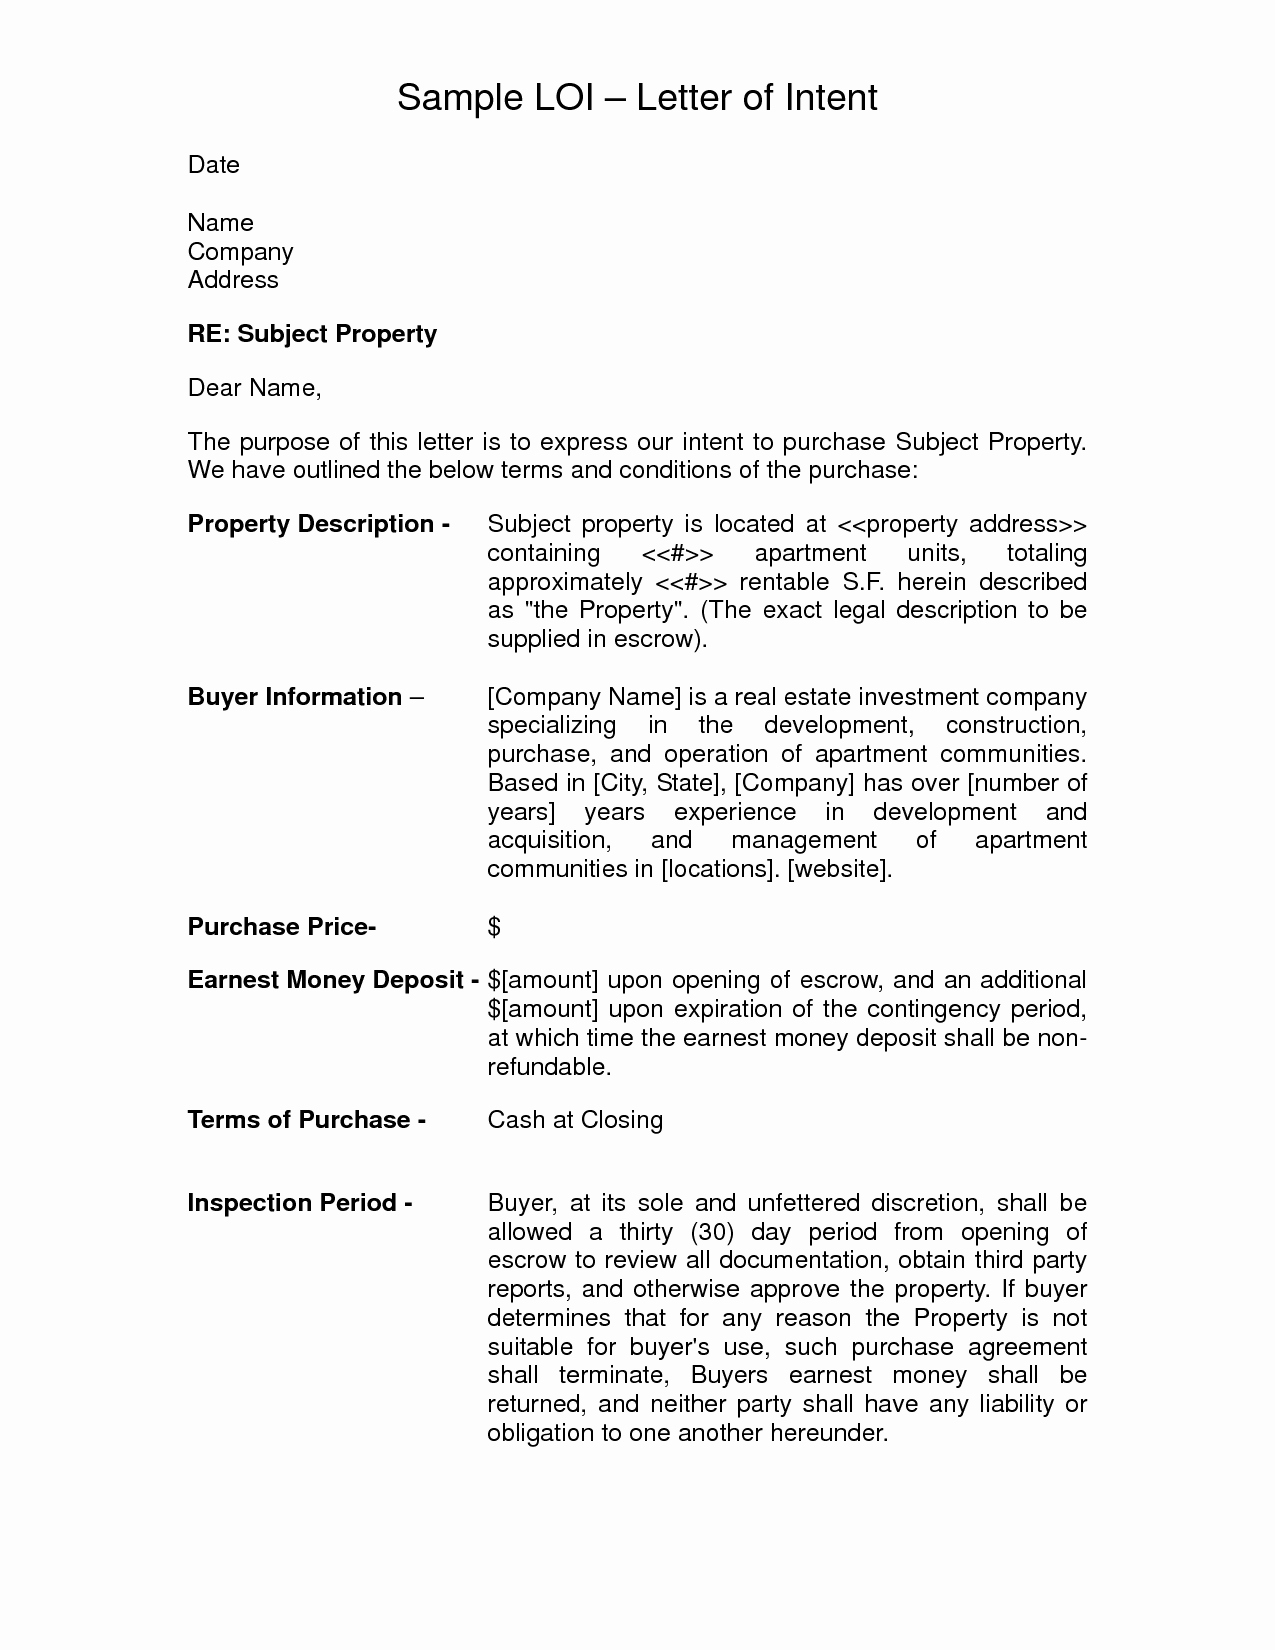 Letter Of Intent to Purchase Template - Letter Intent to Purchase Property Template Beautiful Letter